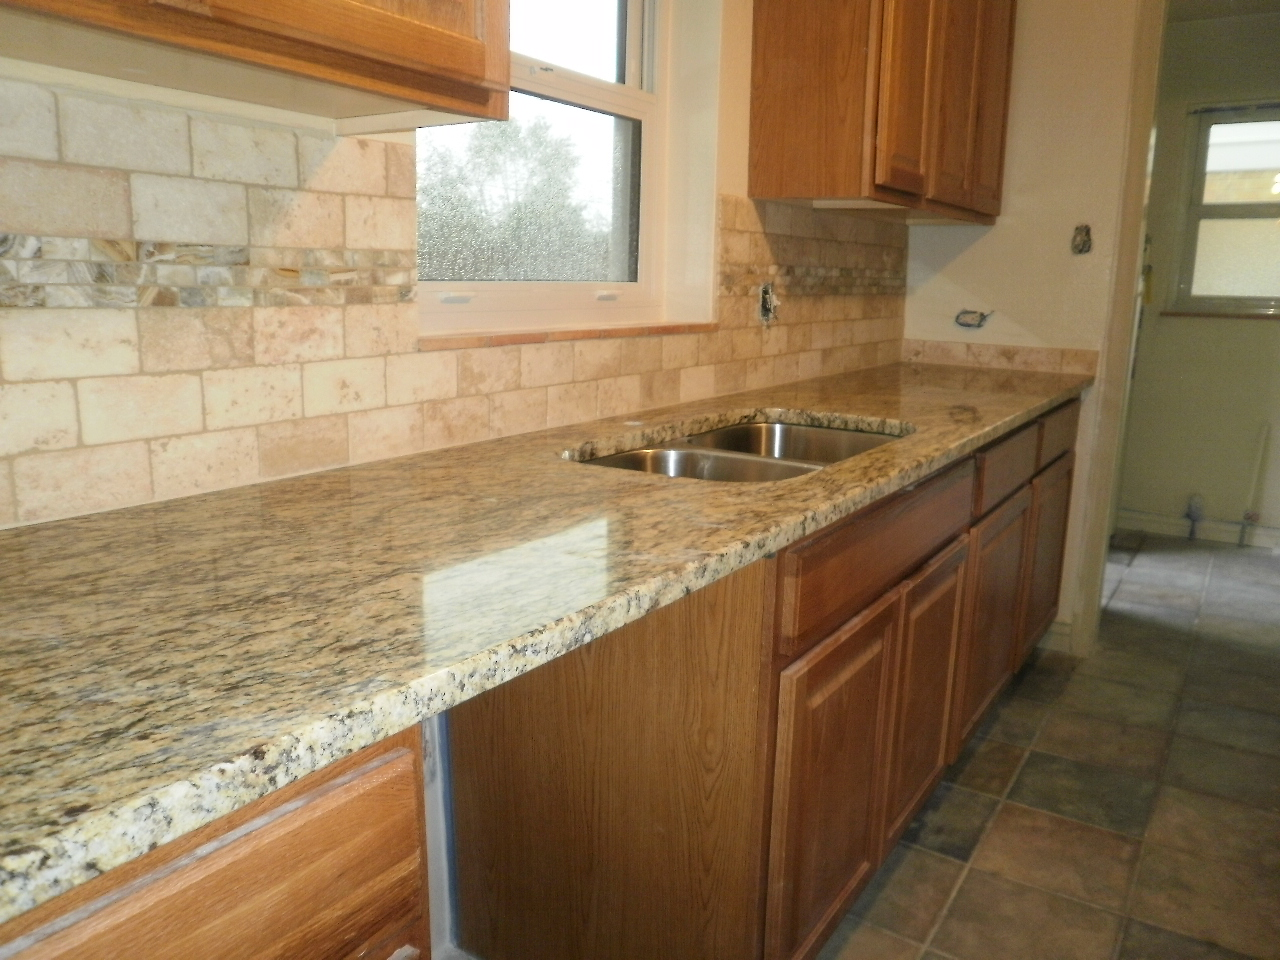 Subway Tile Kitchen Backsplashes with Granite Countertops